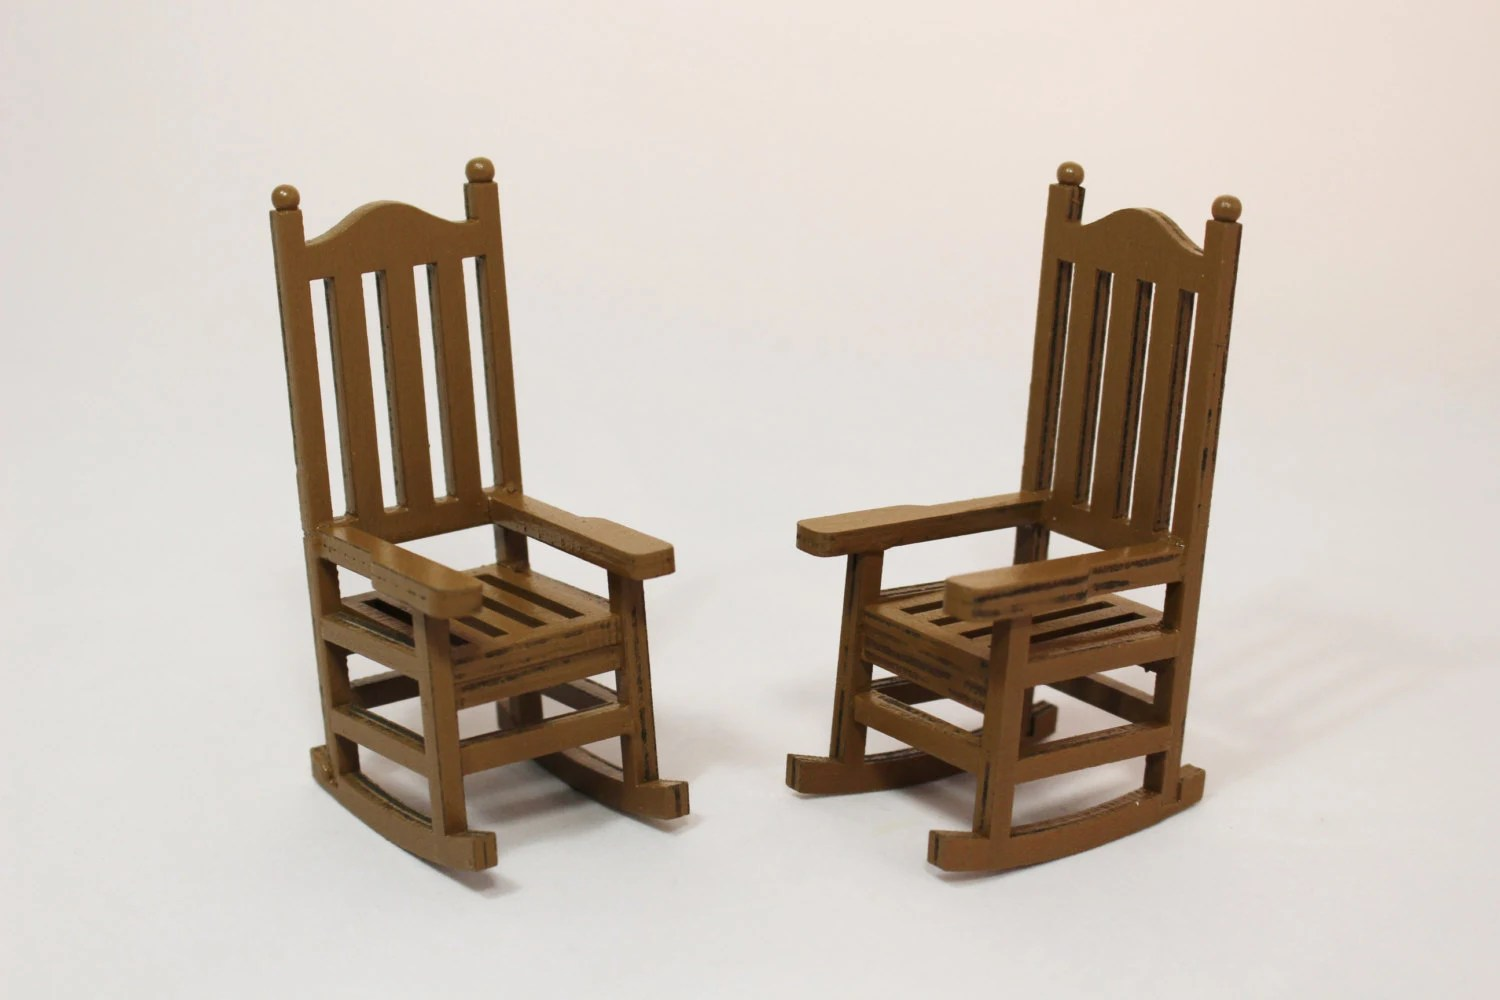 mini rocking chair stretch covers for wingback chairs 1 miniature wooden dollhouse miniatures fairy